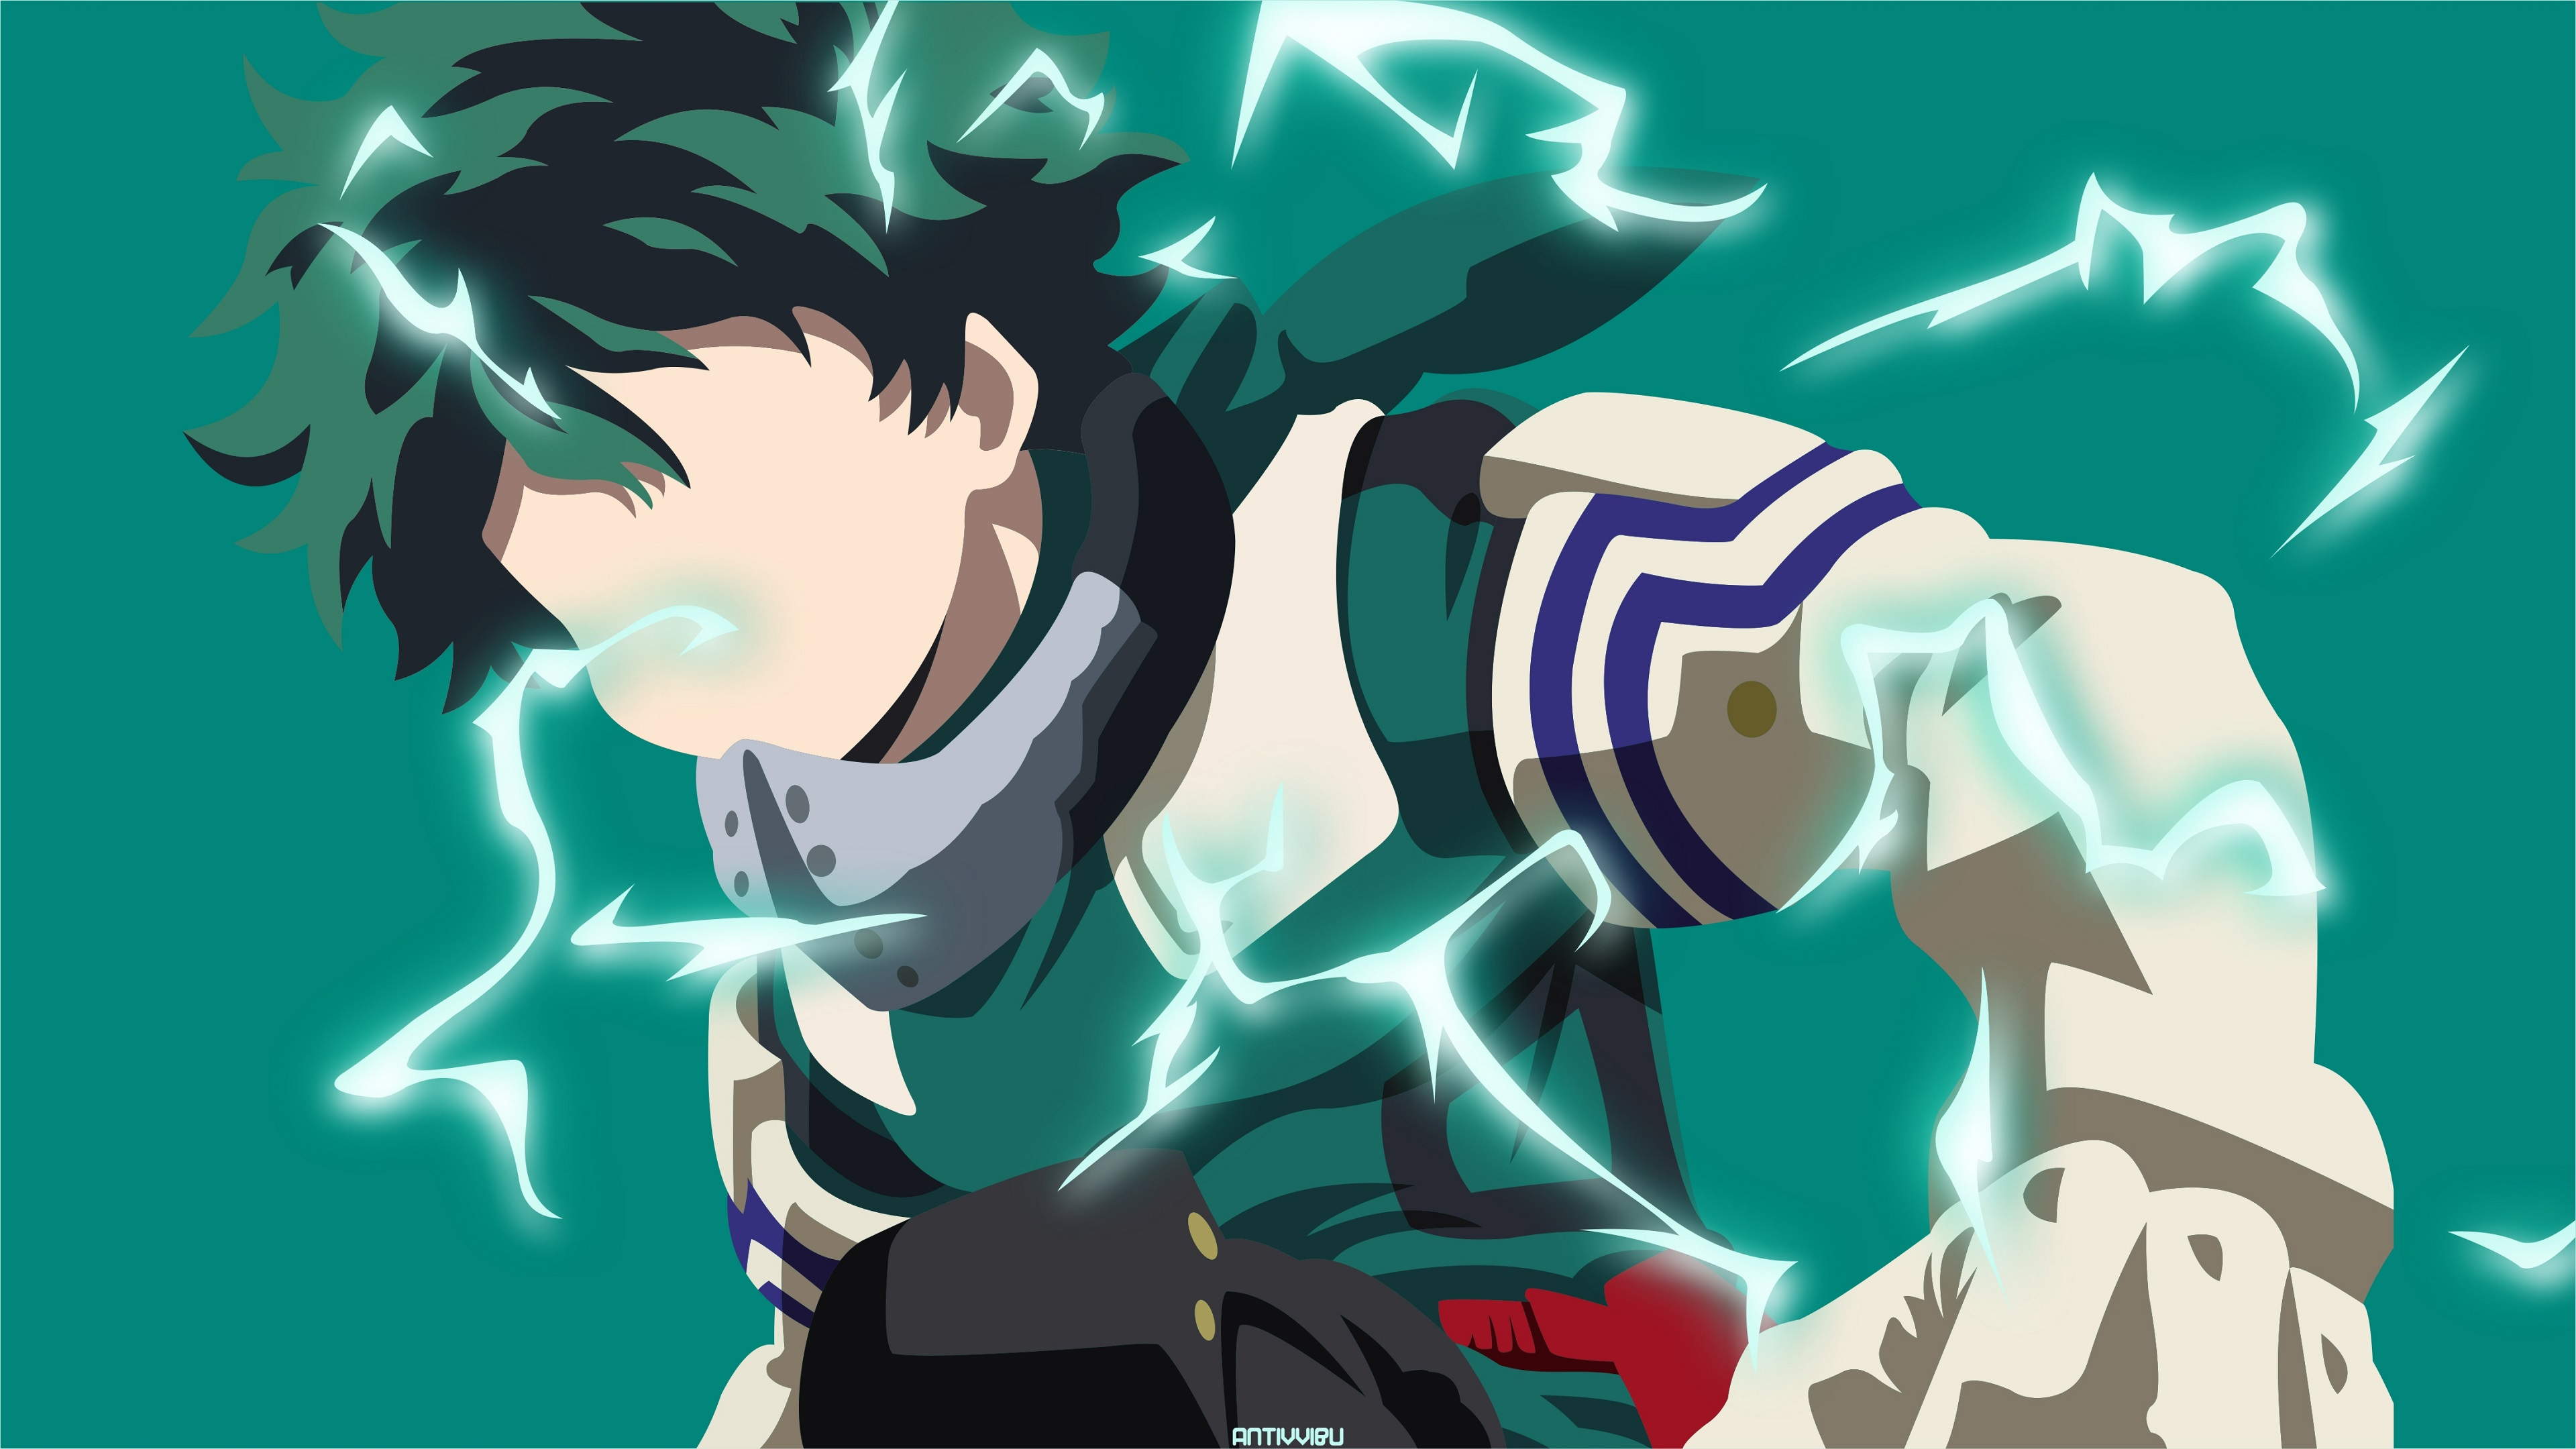 48 my hero academia wallpapers, background,photos and images of my hero academia for desktop windows 10, apple iphone and android mobile. My Hero Academia 4k Ultra HD Wallpaper | Background Image ...